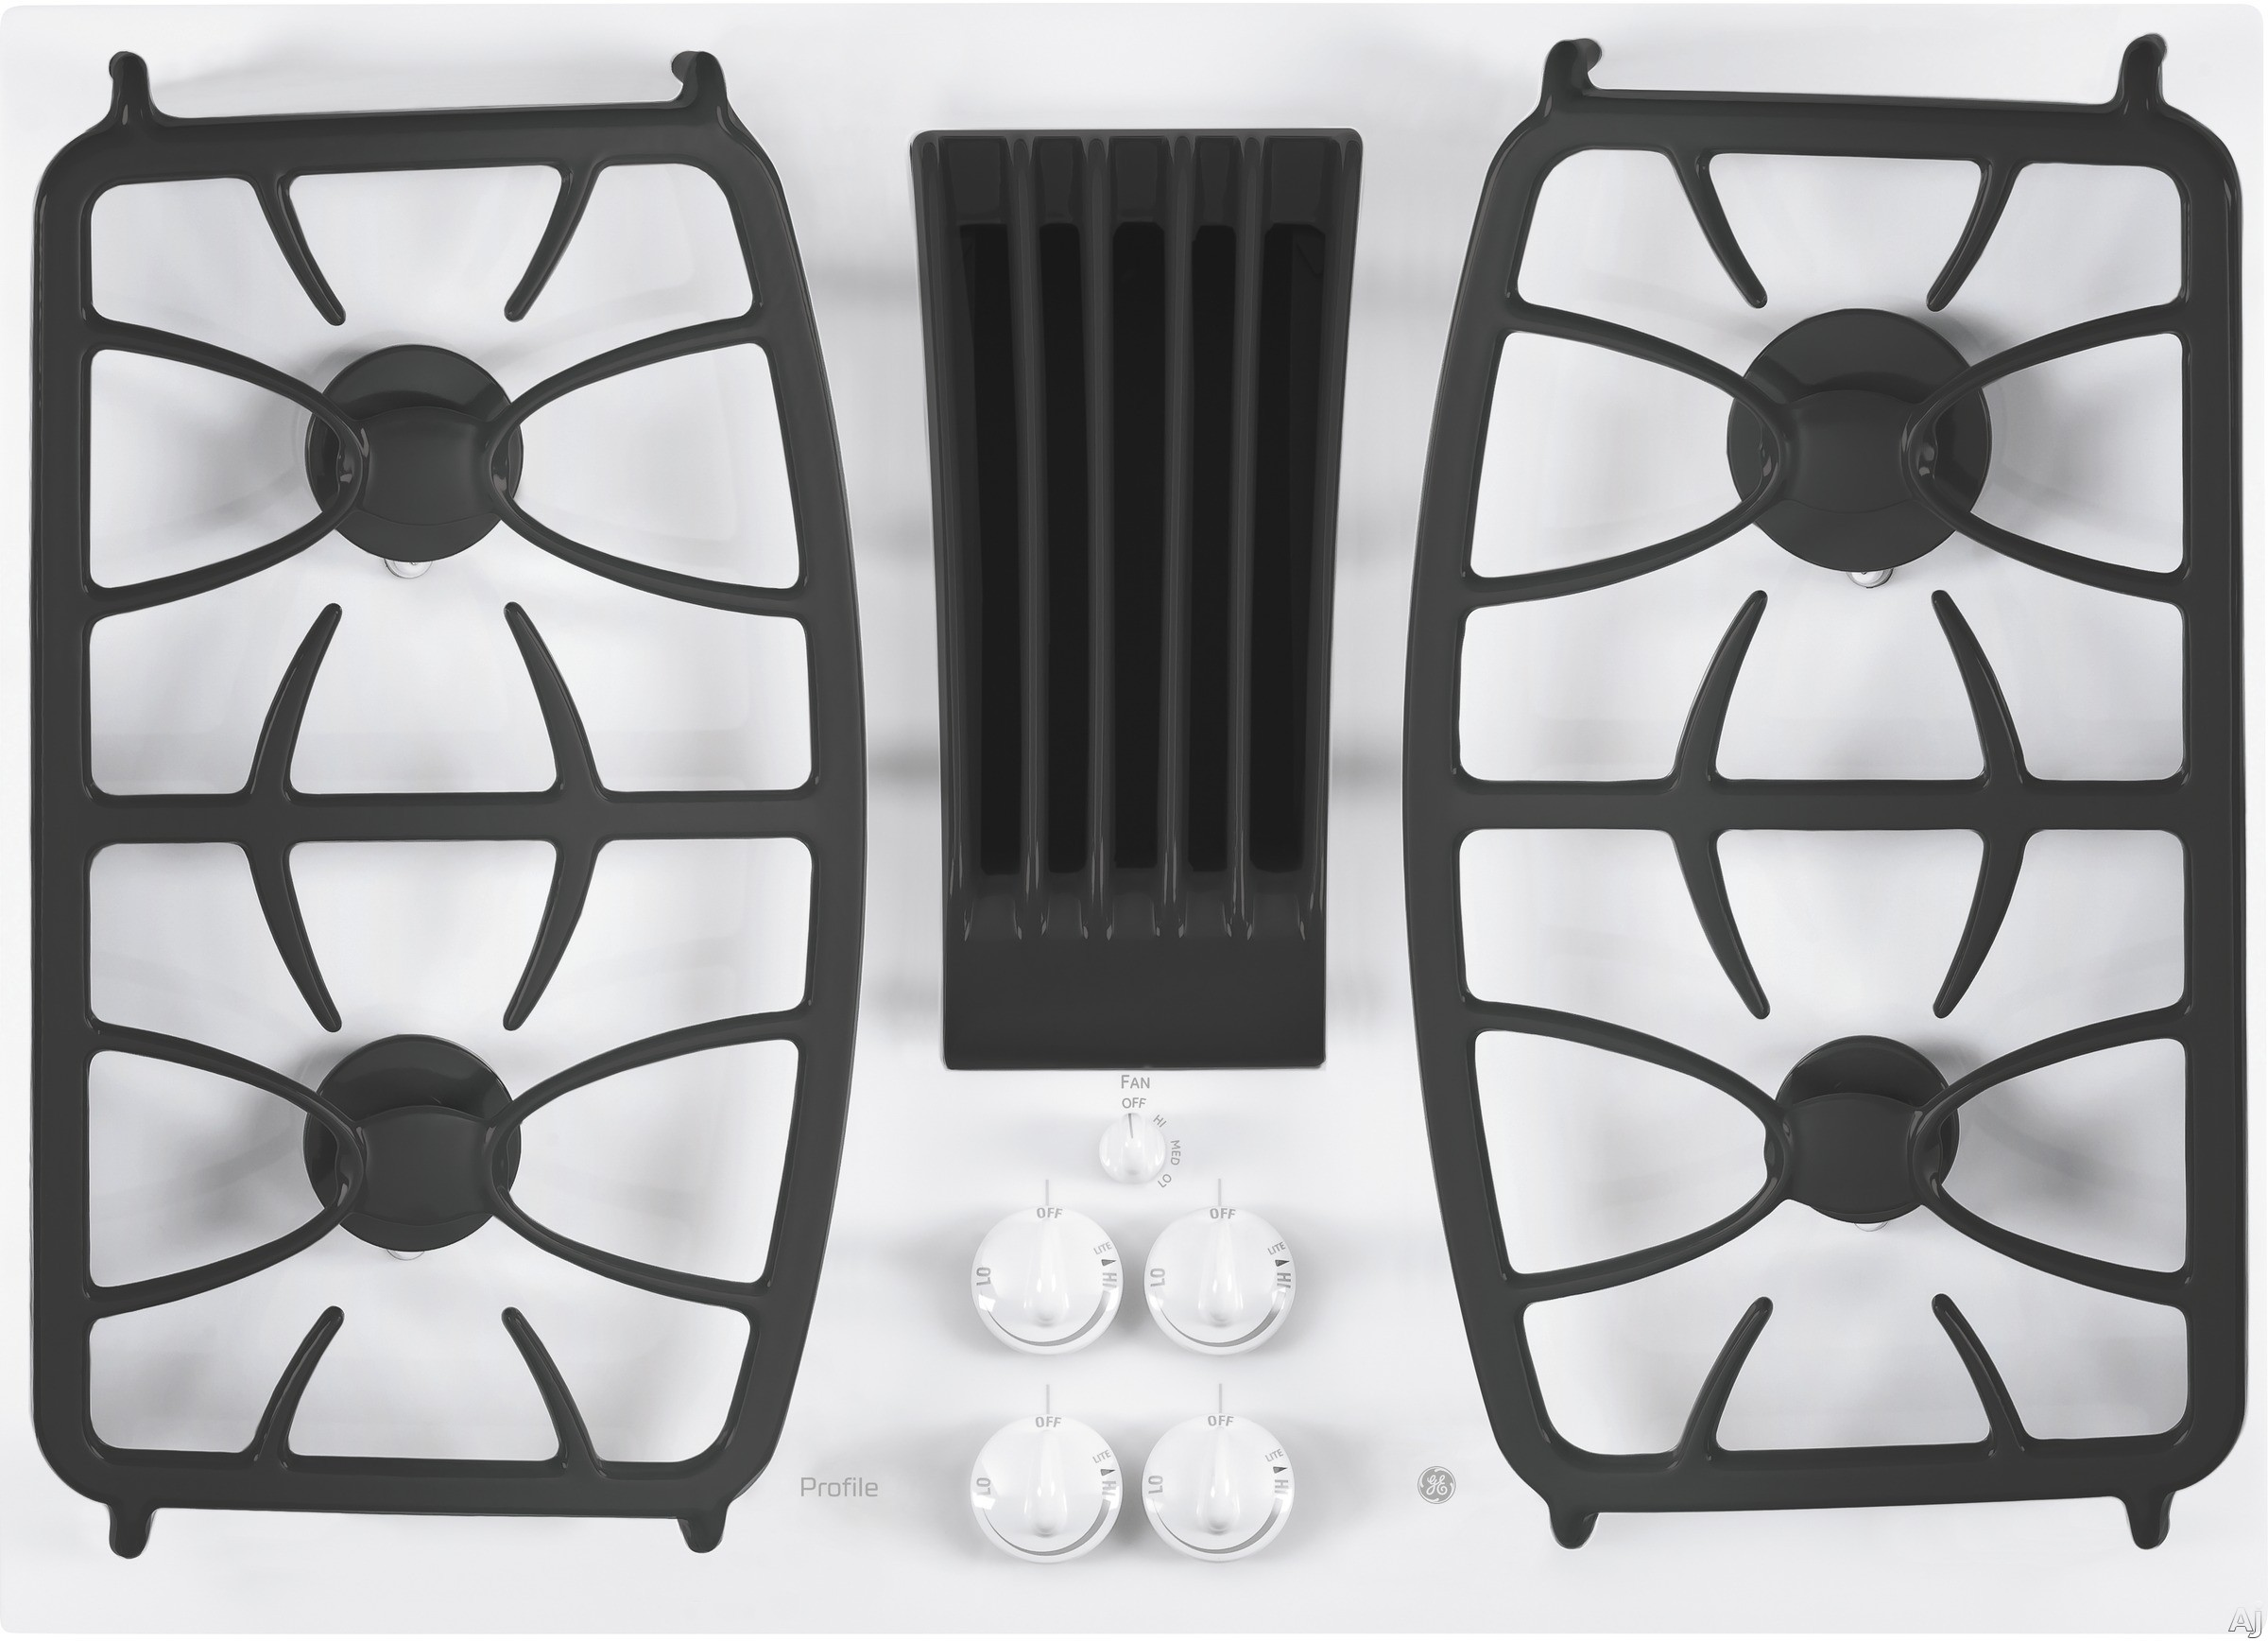 GE Profile PGP9830TJWW 30 Inch Gas Cooktop with 4 Sealed Burners, Downdraft Exhaust System, Glass-Cooktop Finish and Dishwasher-Safe Grates, Control Knobs, GE Fits! Guarantee and ADA Compliant: White